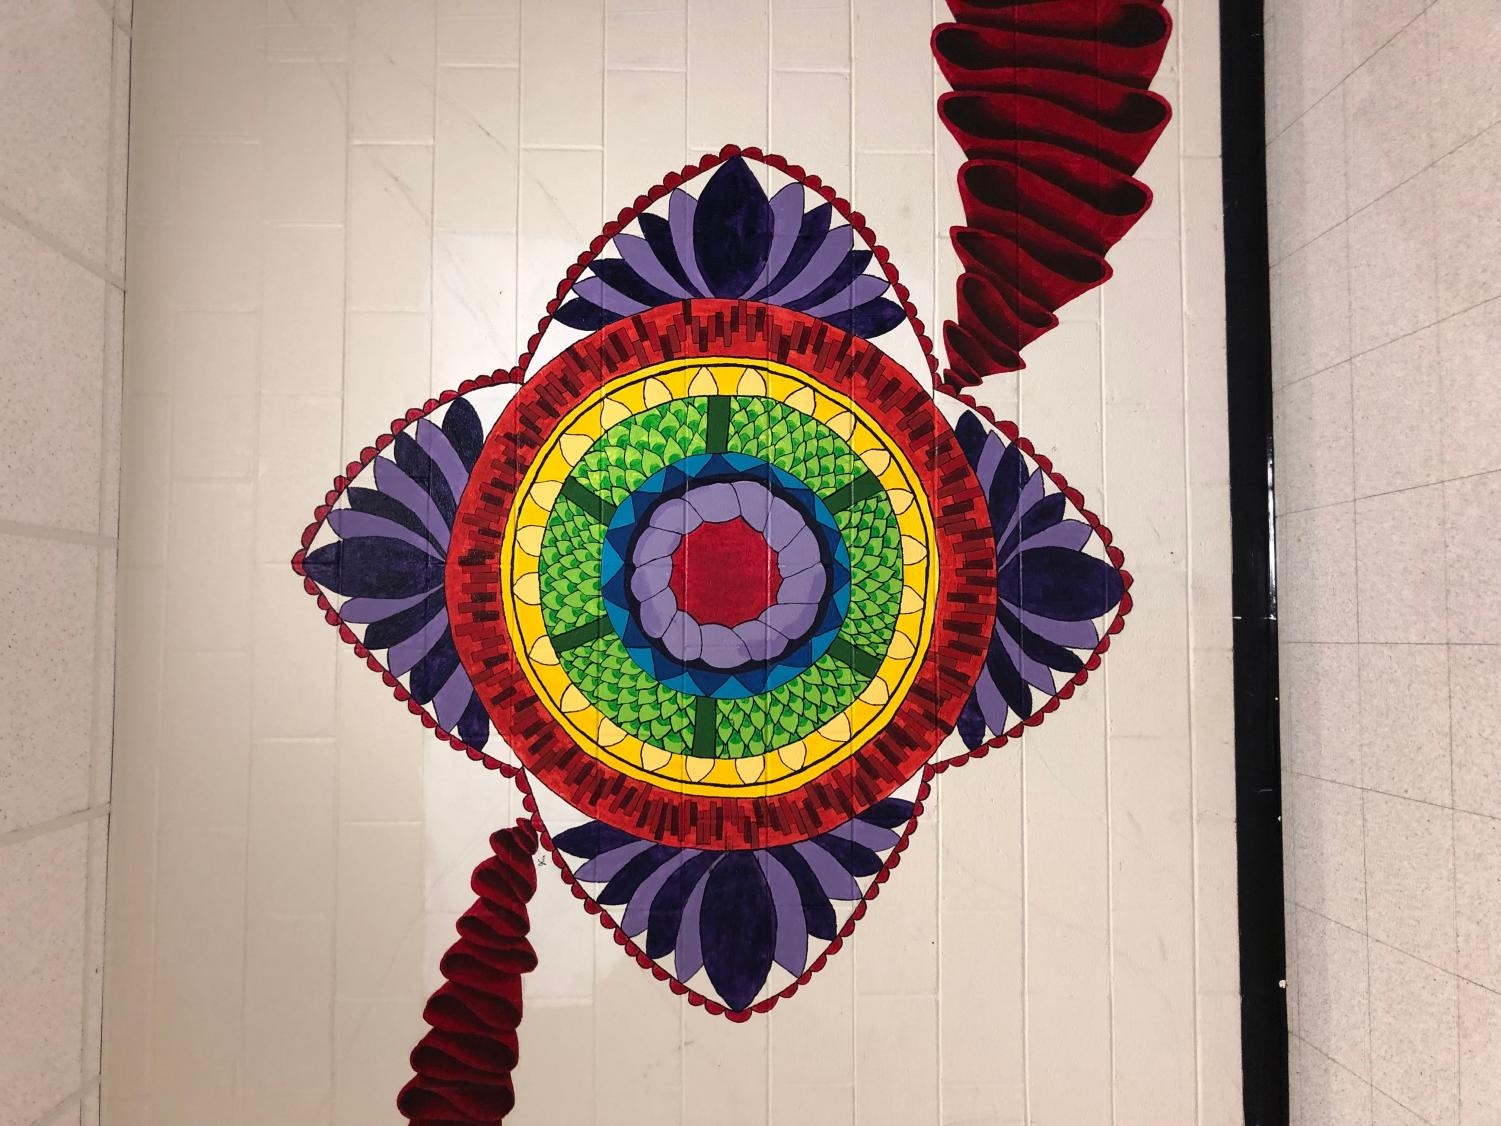 This mural is located in the art hallway, and is one of the largest in the school.